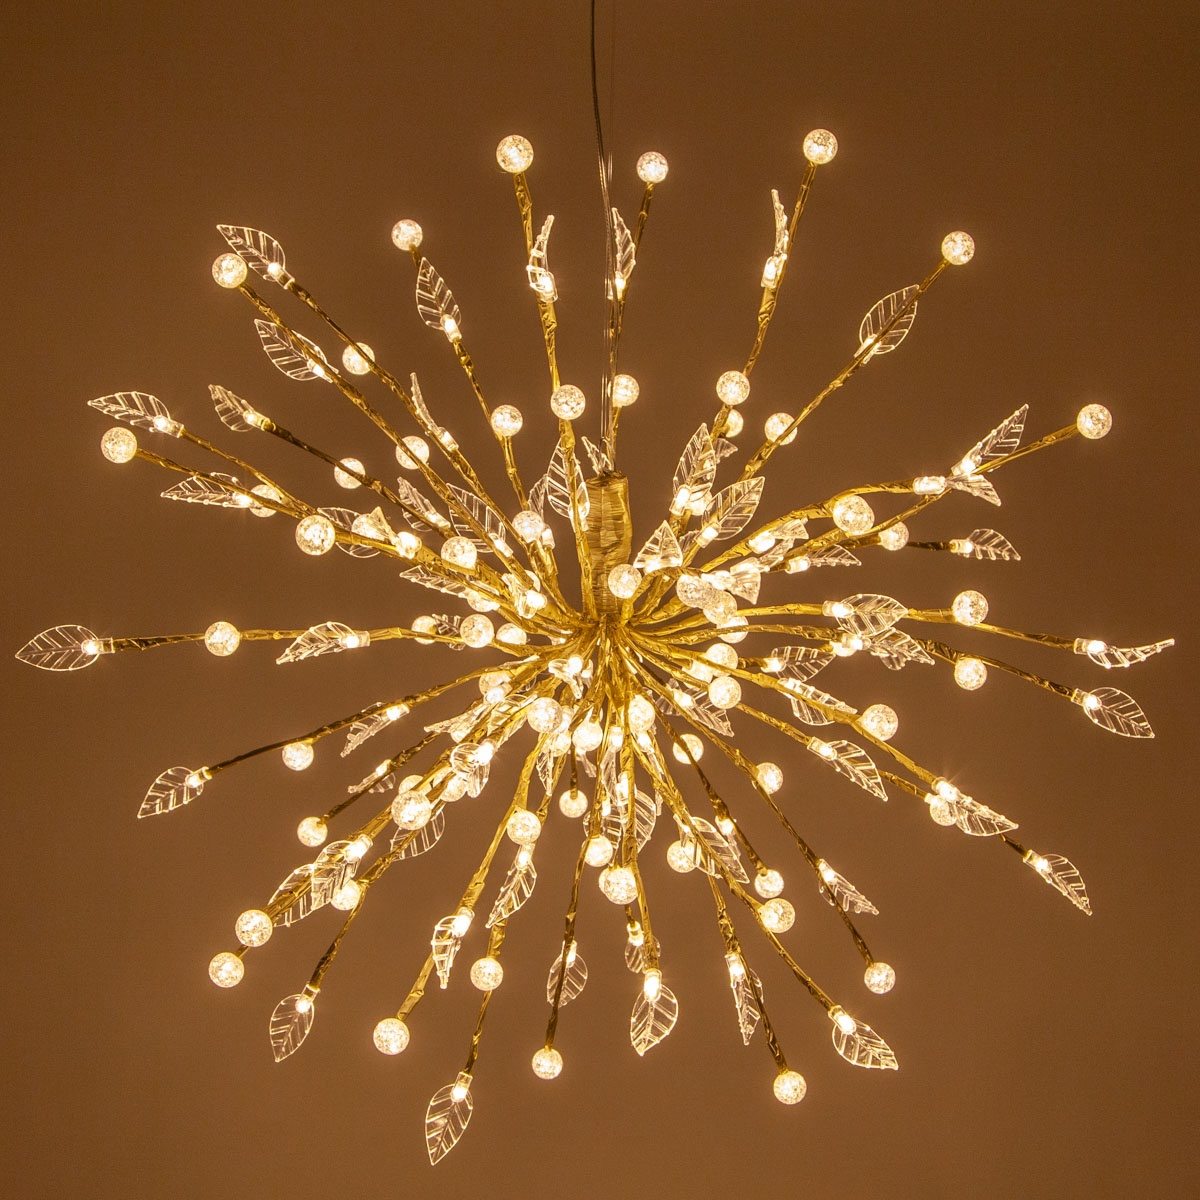 Gold Wedding Decorations: Gold Starburst Lighted Branches With Warm White LED Lights